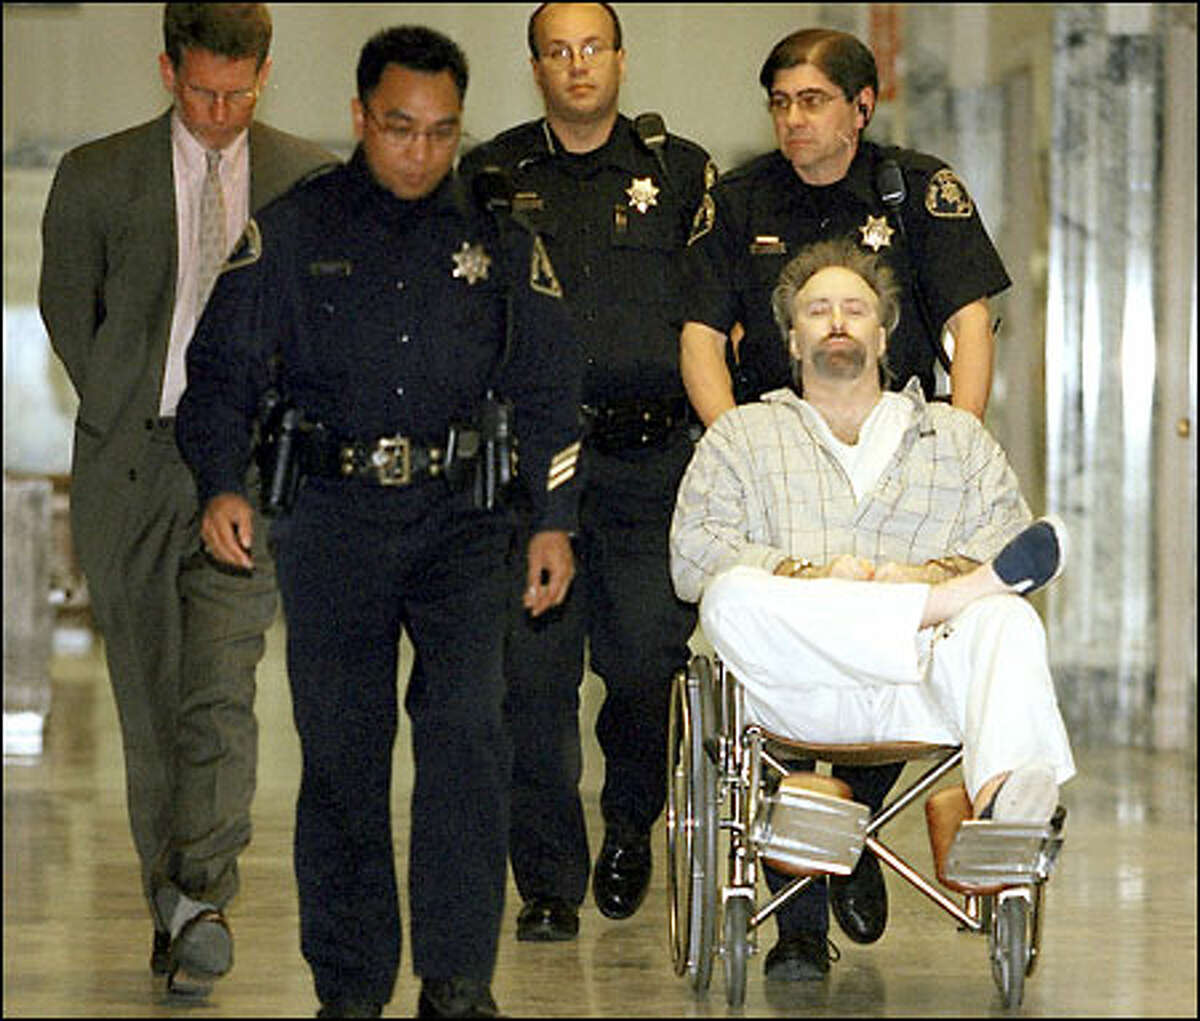 Dayva Cross is wheeled into court yesterday, where he heard a jury sentence him to death for the slayings of his wife and her two daughters.